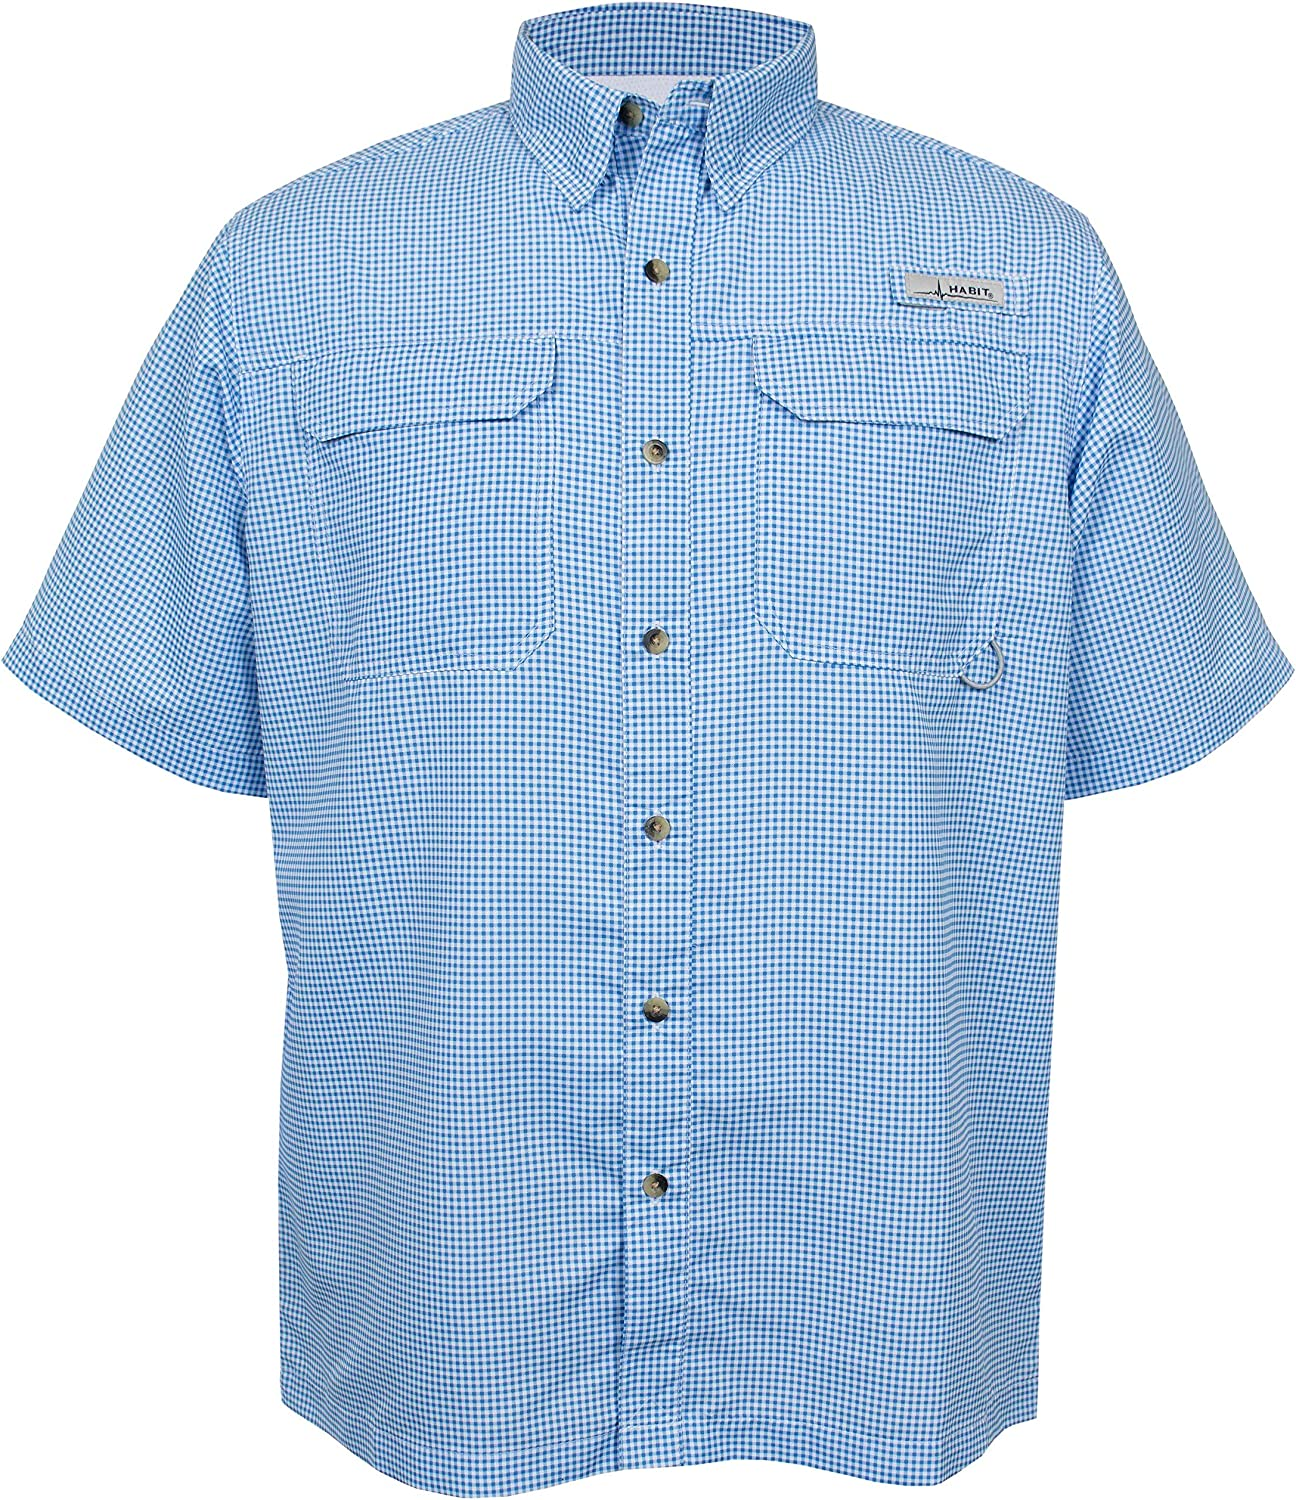 HABIT Men's Short Sleeve Fishing Guide Shirt, Bahama Blue Check, Small